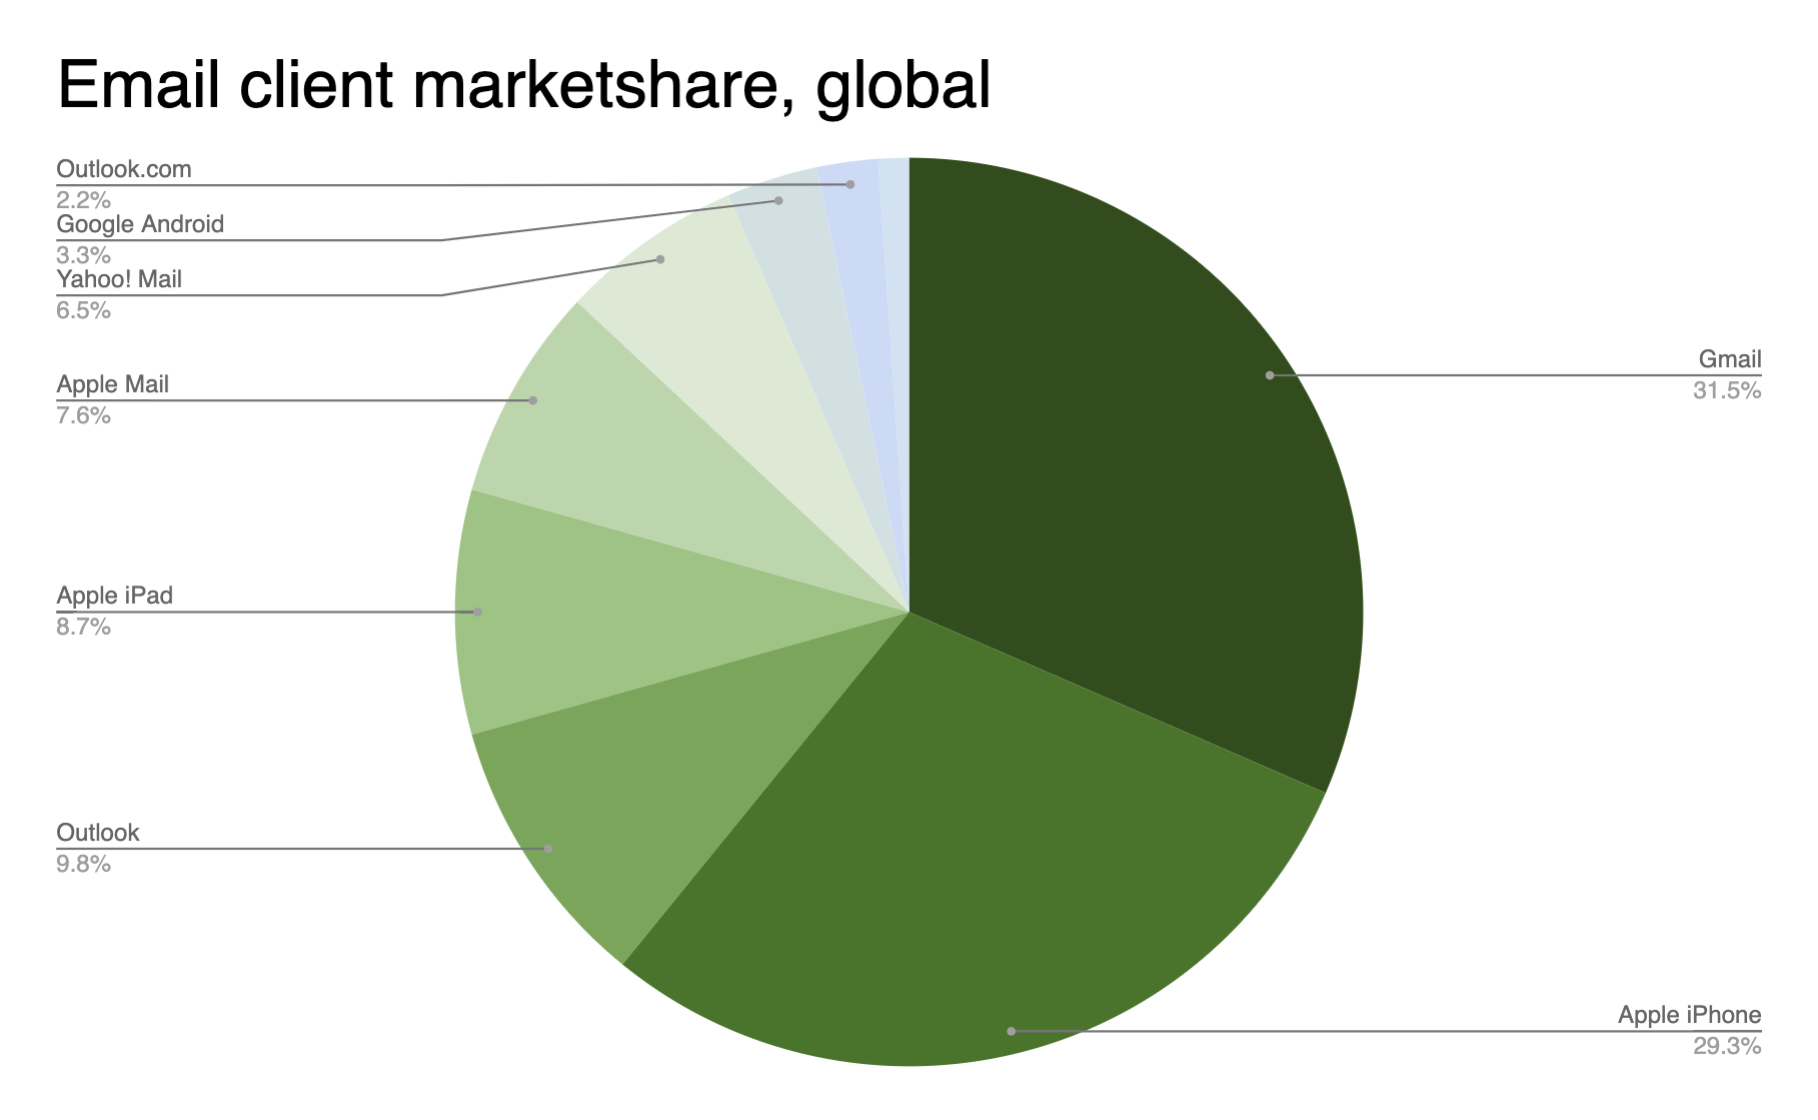 pie chart showing the market share of different email clients